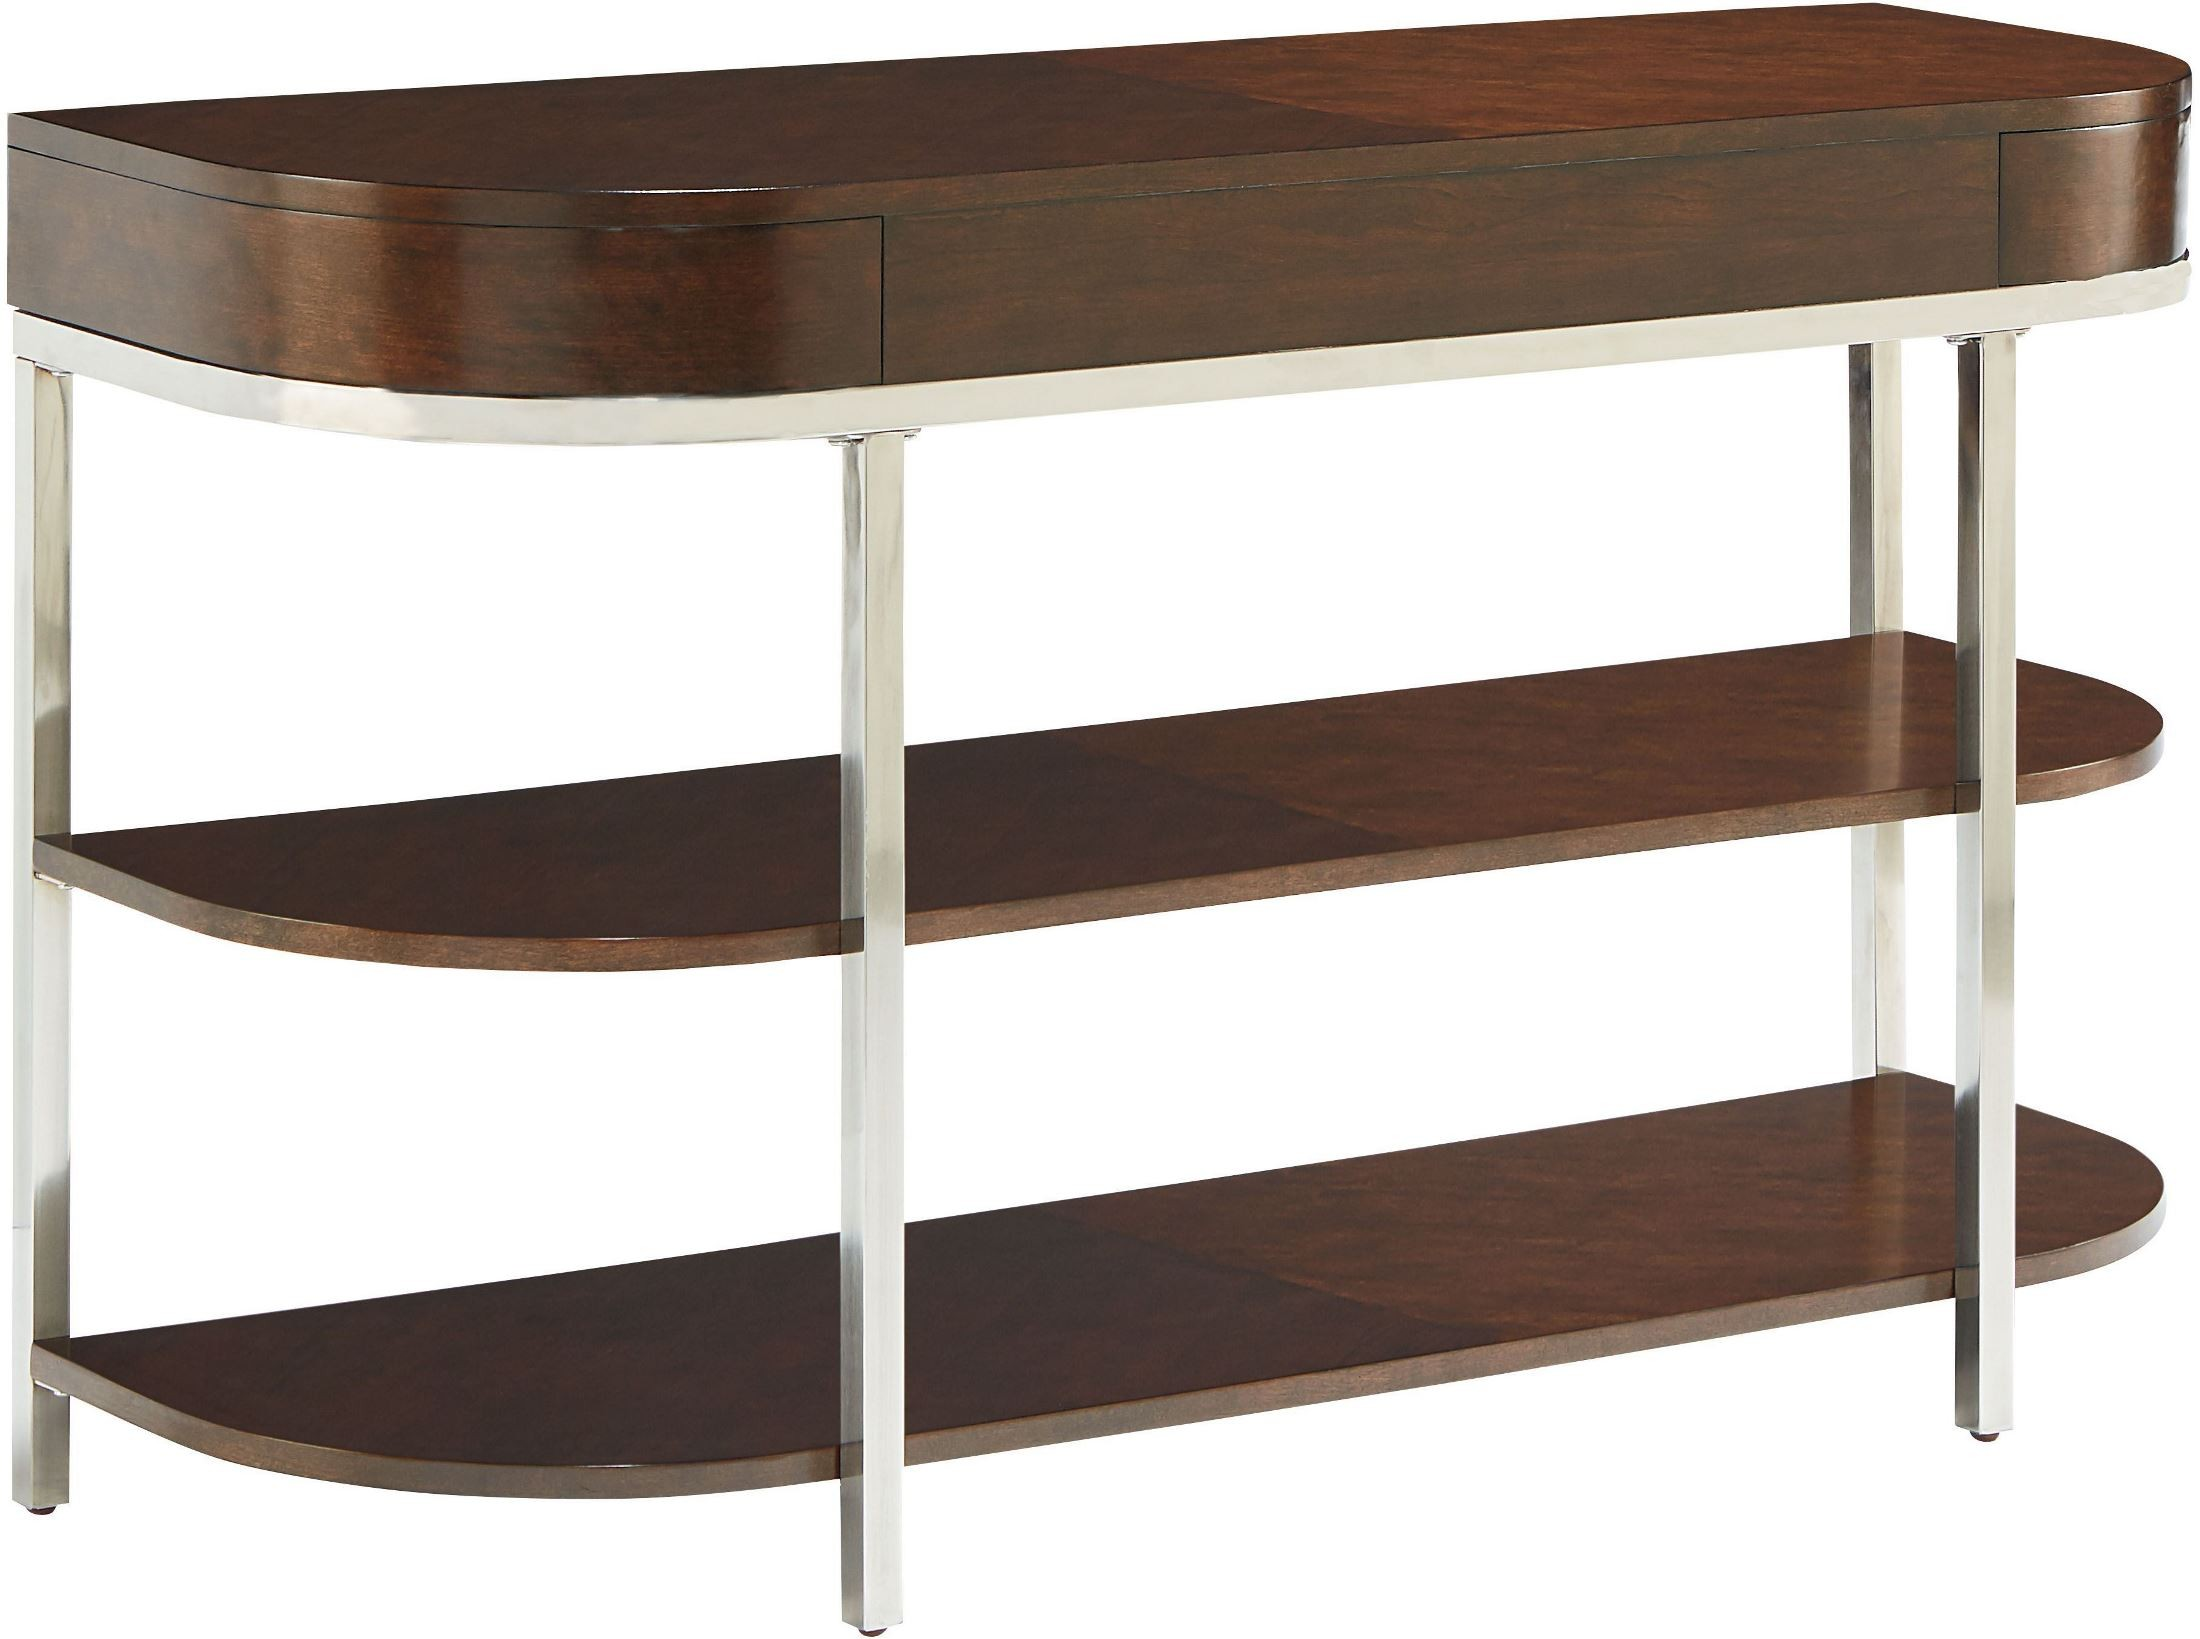 Mira deep lustrous tobacco brown console table 20426 for 8 deep console table